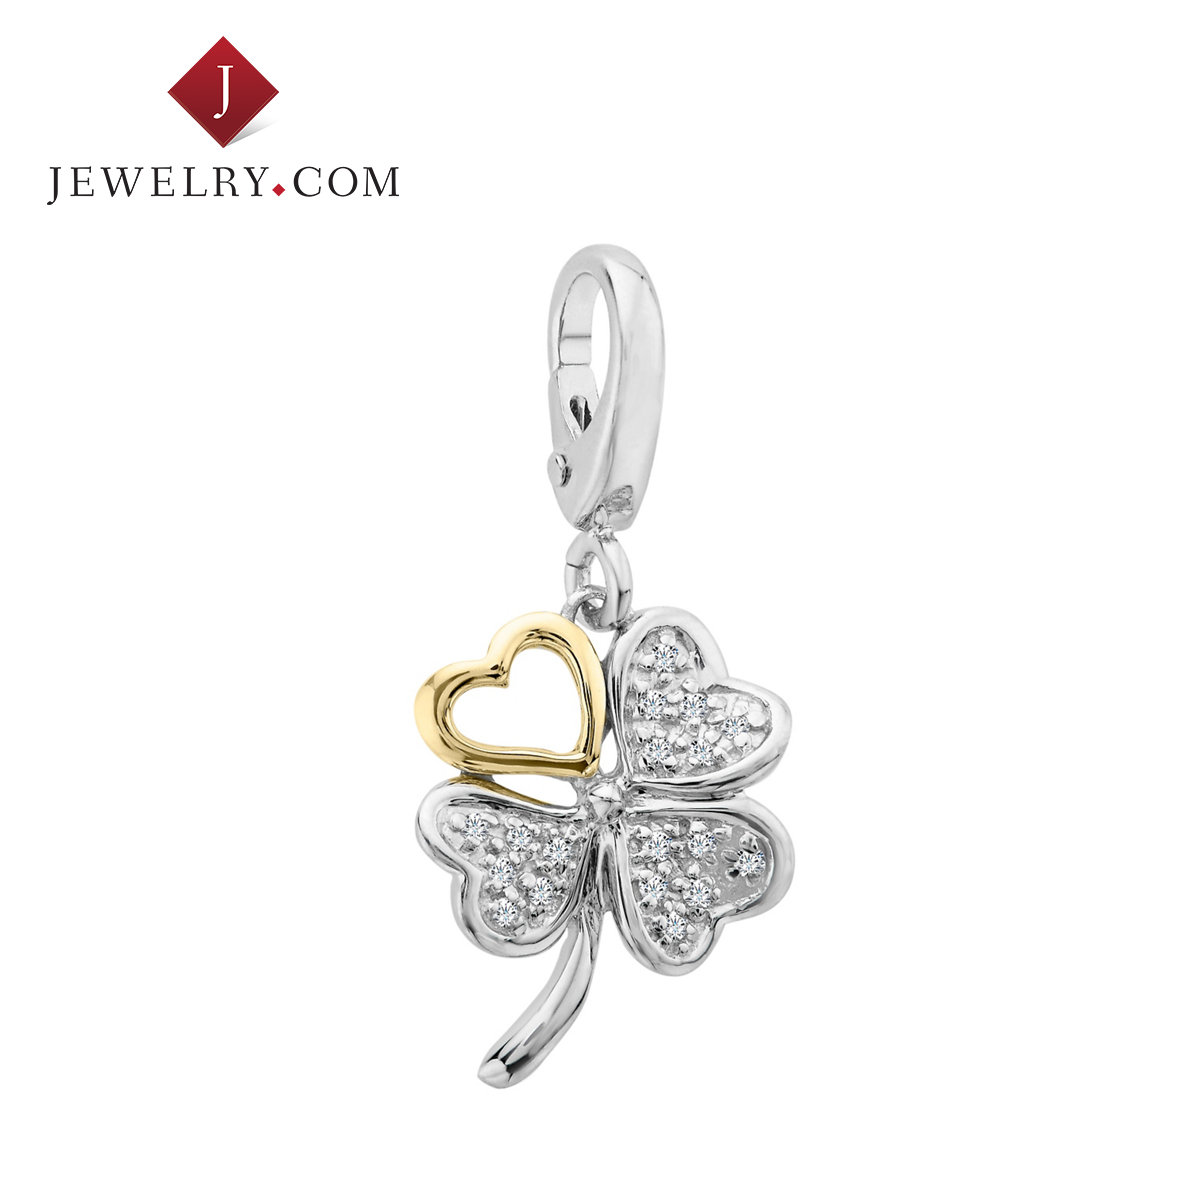 Jewelry.com official 925 silver 0.1 karat k gold inlay diamond exquisite creative clover charm